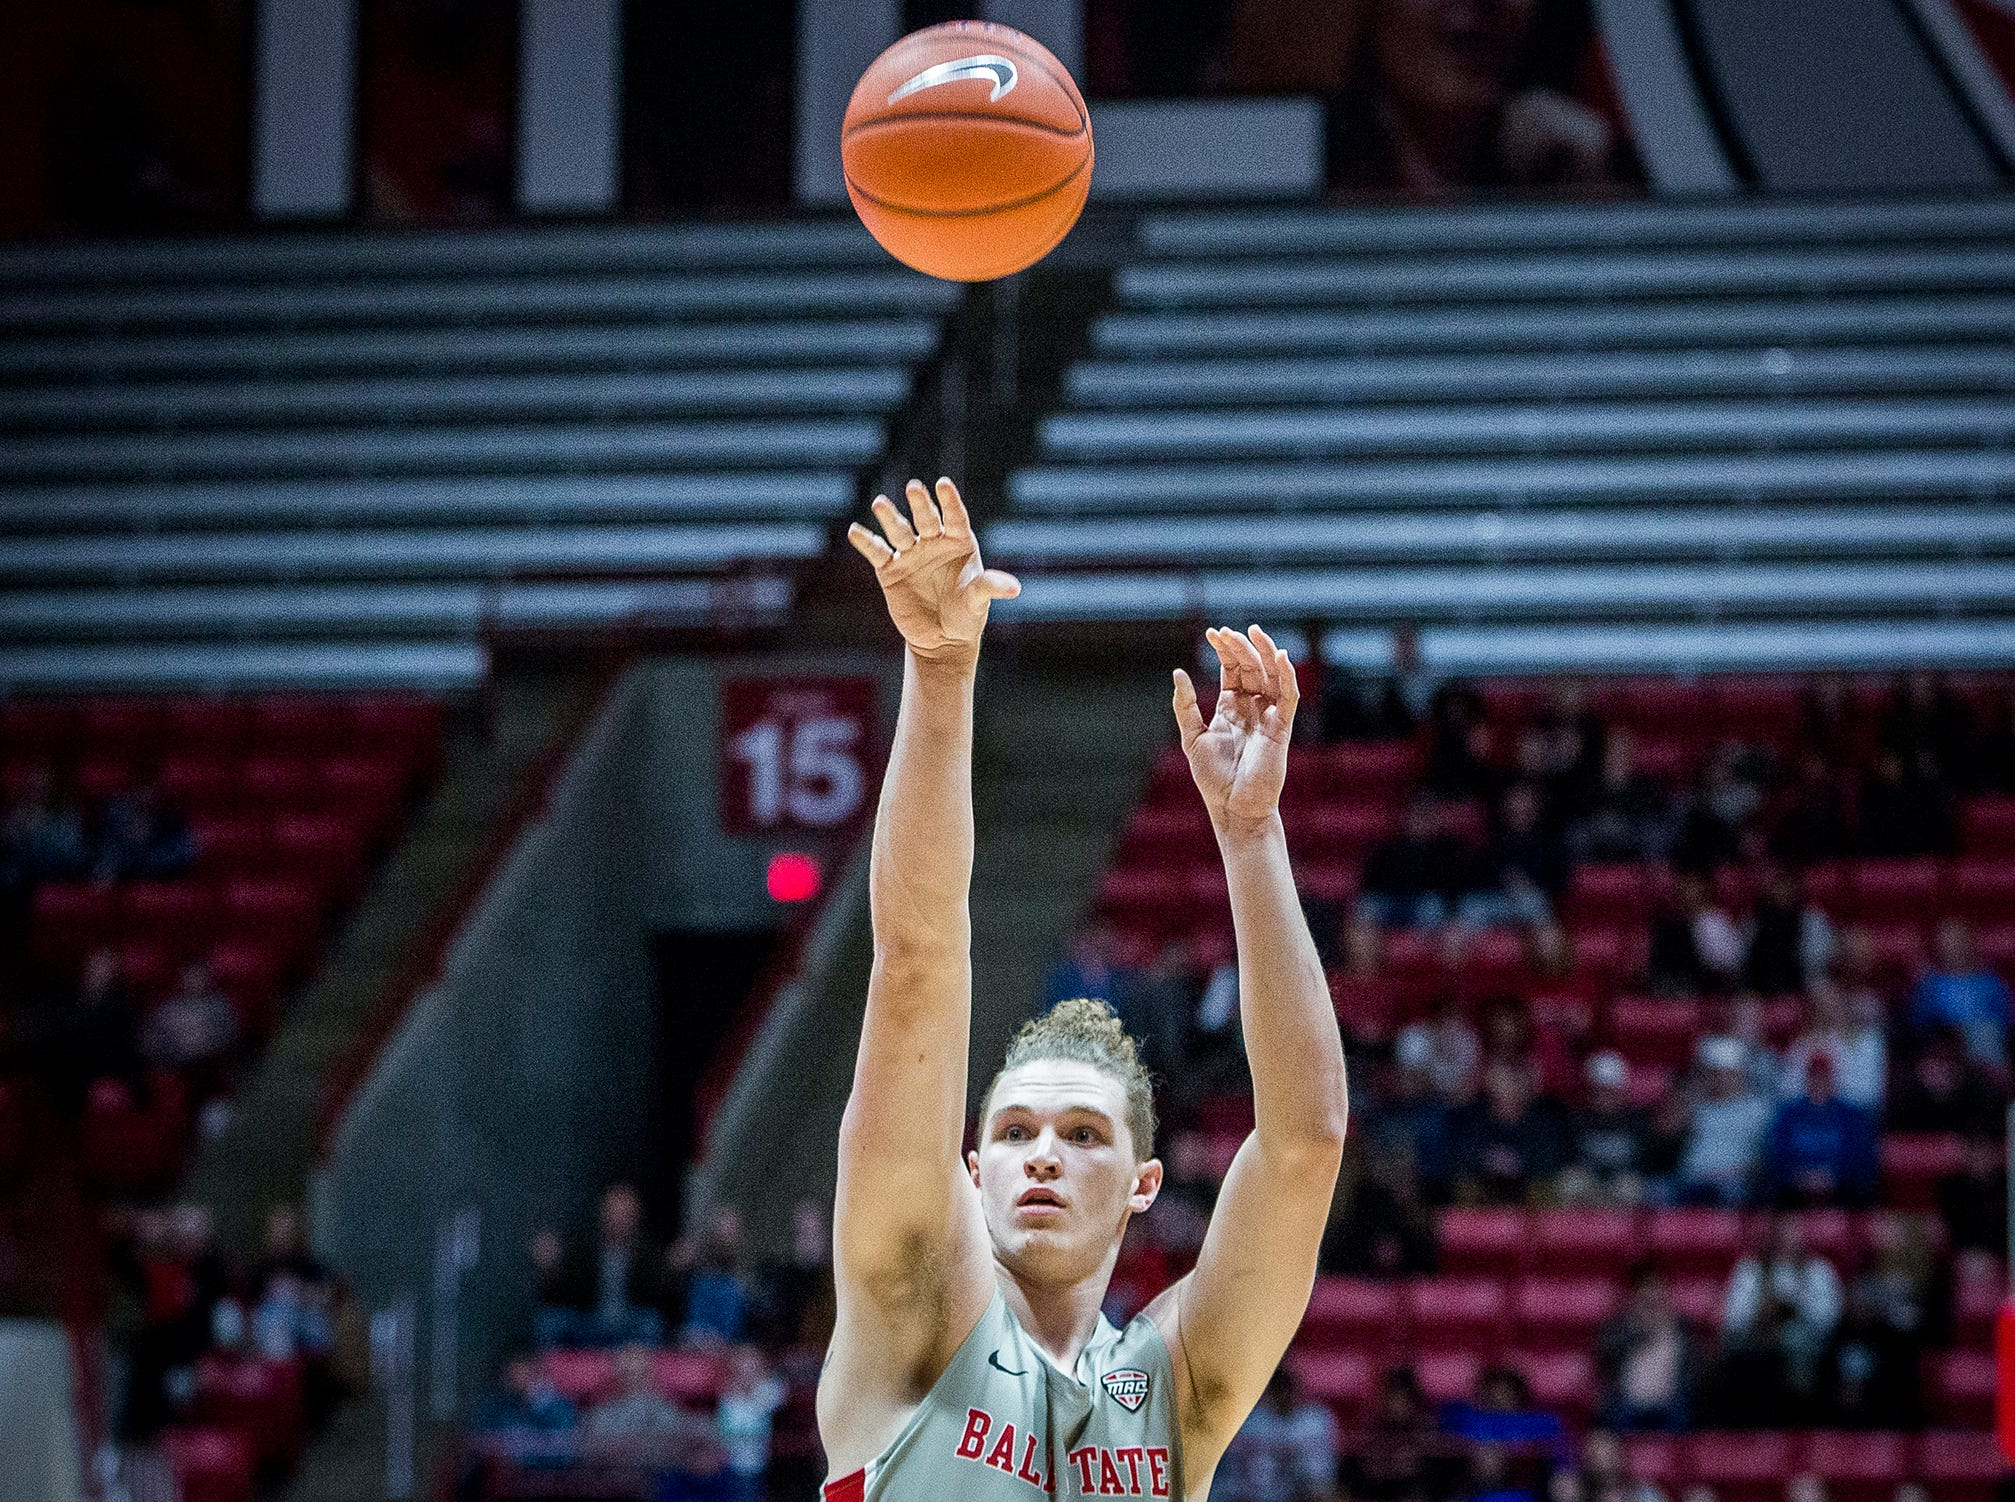 Ball State's Blake Huggins shoots a free throw against Tiffin during their game at Worthen Arena Tuesday, Nov. 27, 2018.